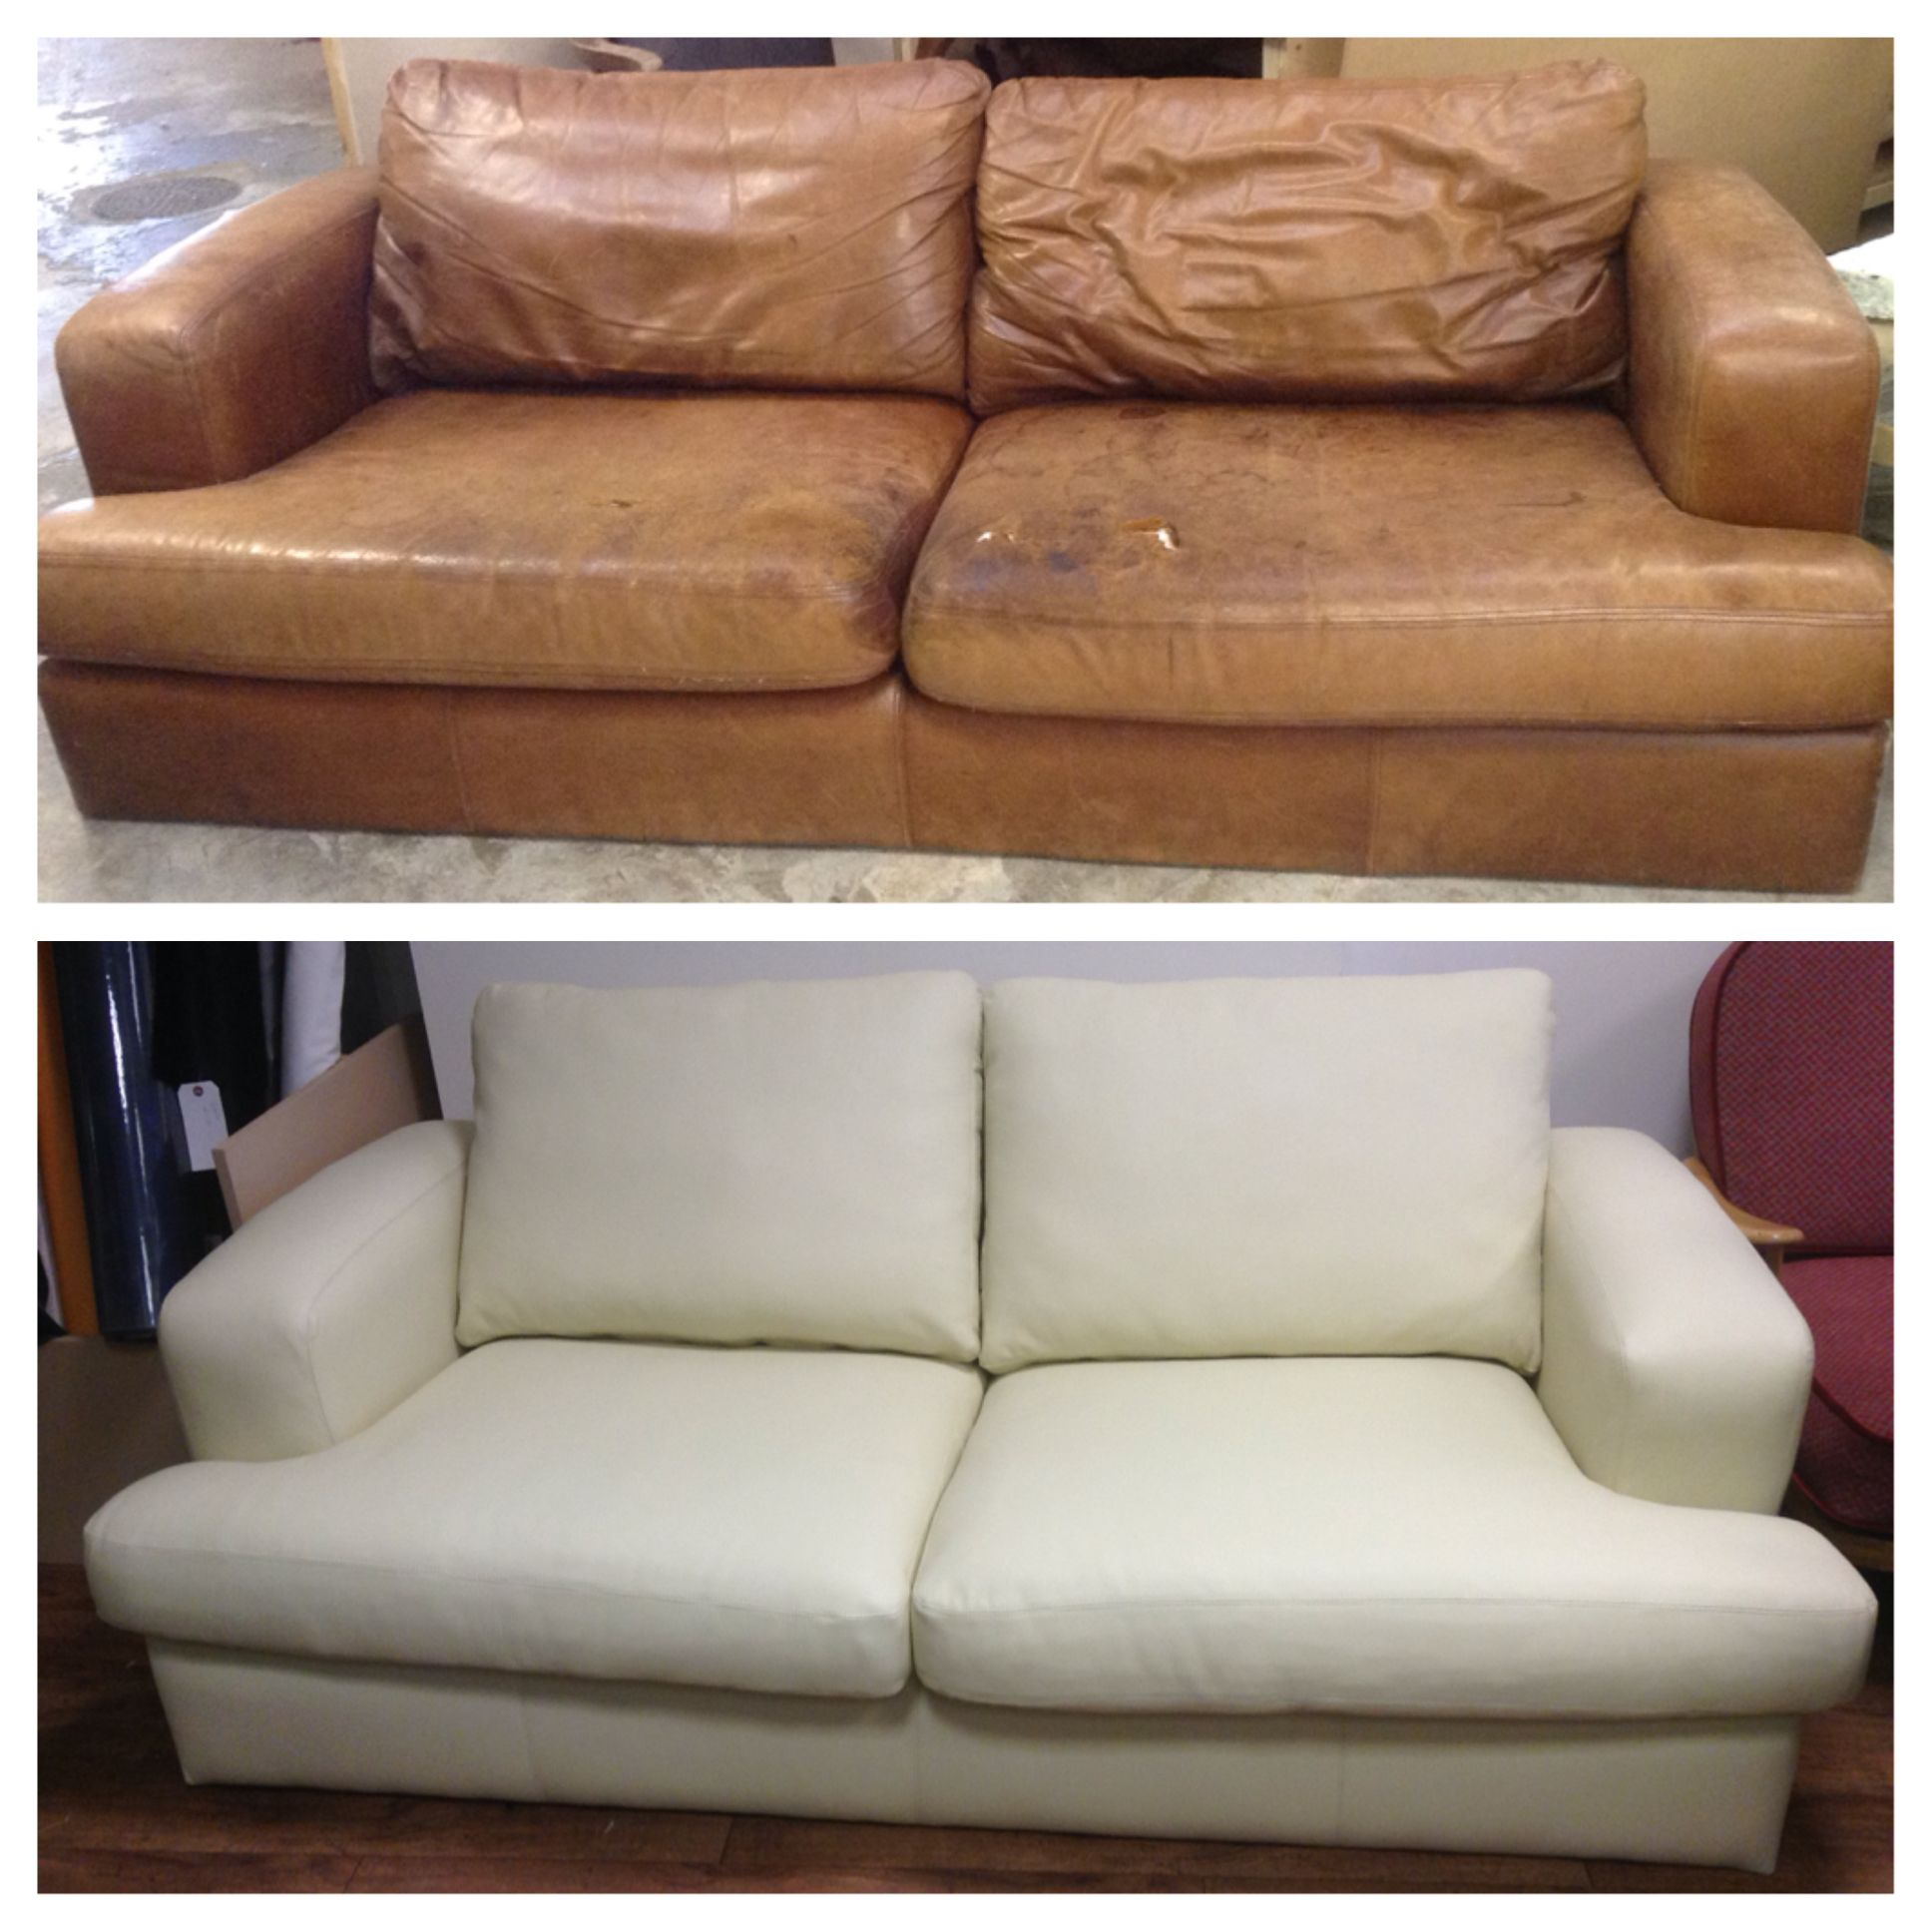 Reupholster Sofa South London Ashley Larkinhurst Sleeper How To A Two Seater Www